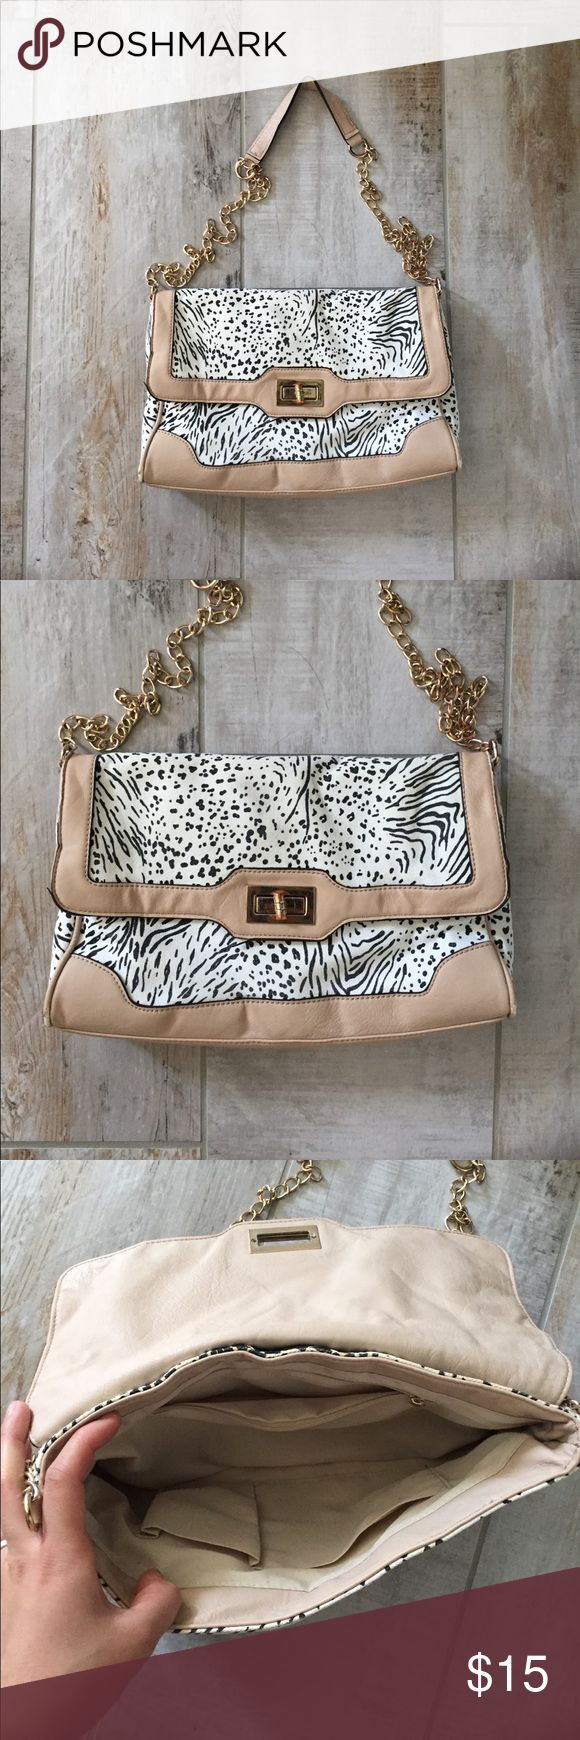 Aldo animal print clutch Aldo animal print clutch. Used. Feel free to offer. Aldo Bags Clutches & Wristlets